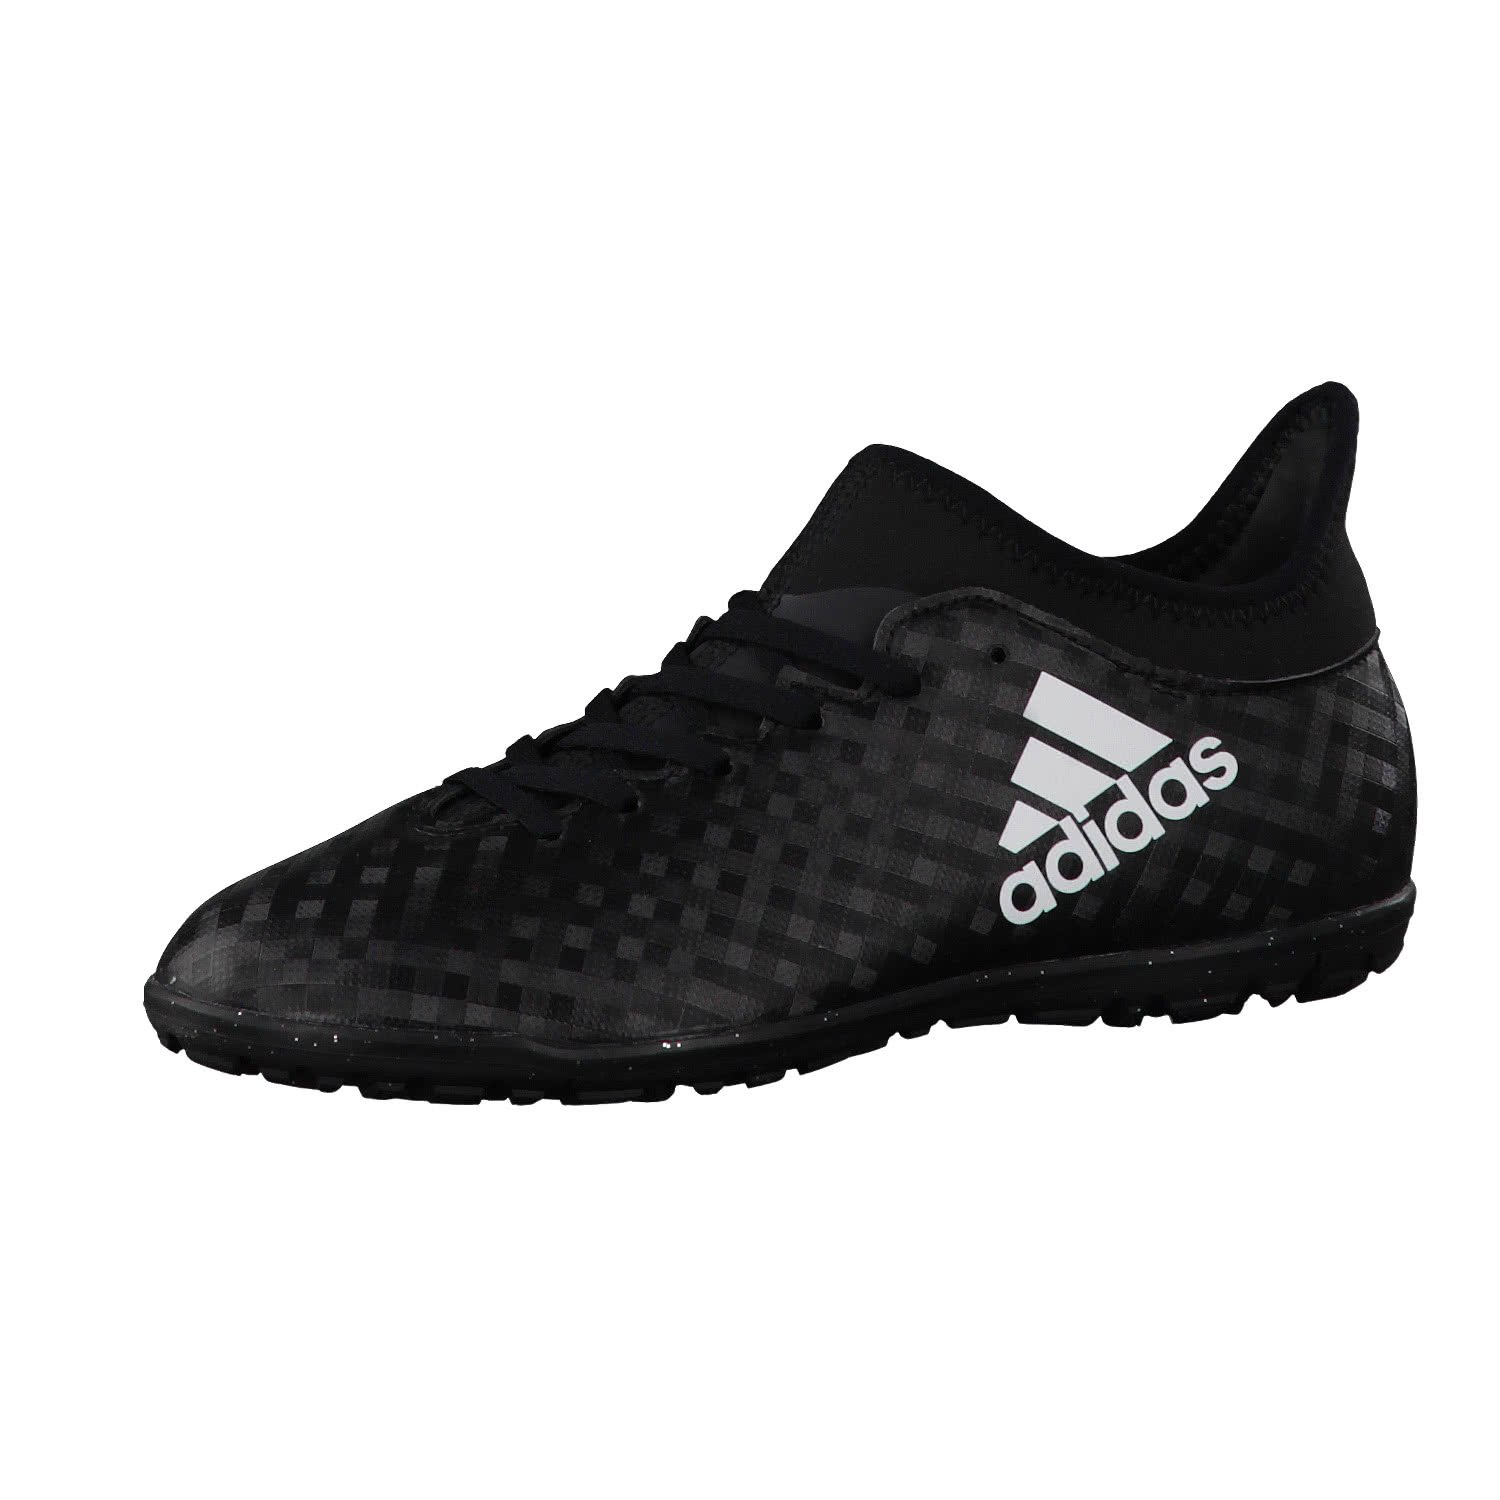 a3c5f267f4a adidas Boys Children Boys X 16.3 TF Astro Turf Trainers in Black - 13.5  Child  Amazon.co.uk  Shoes   Bags